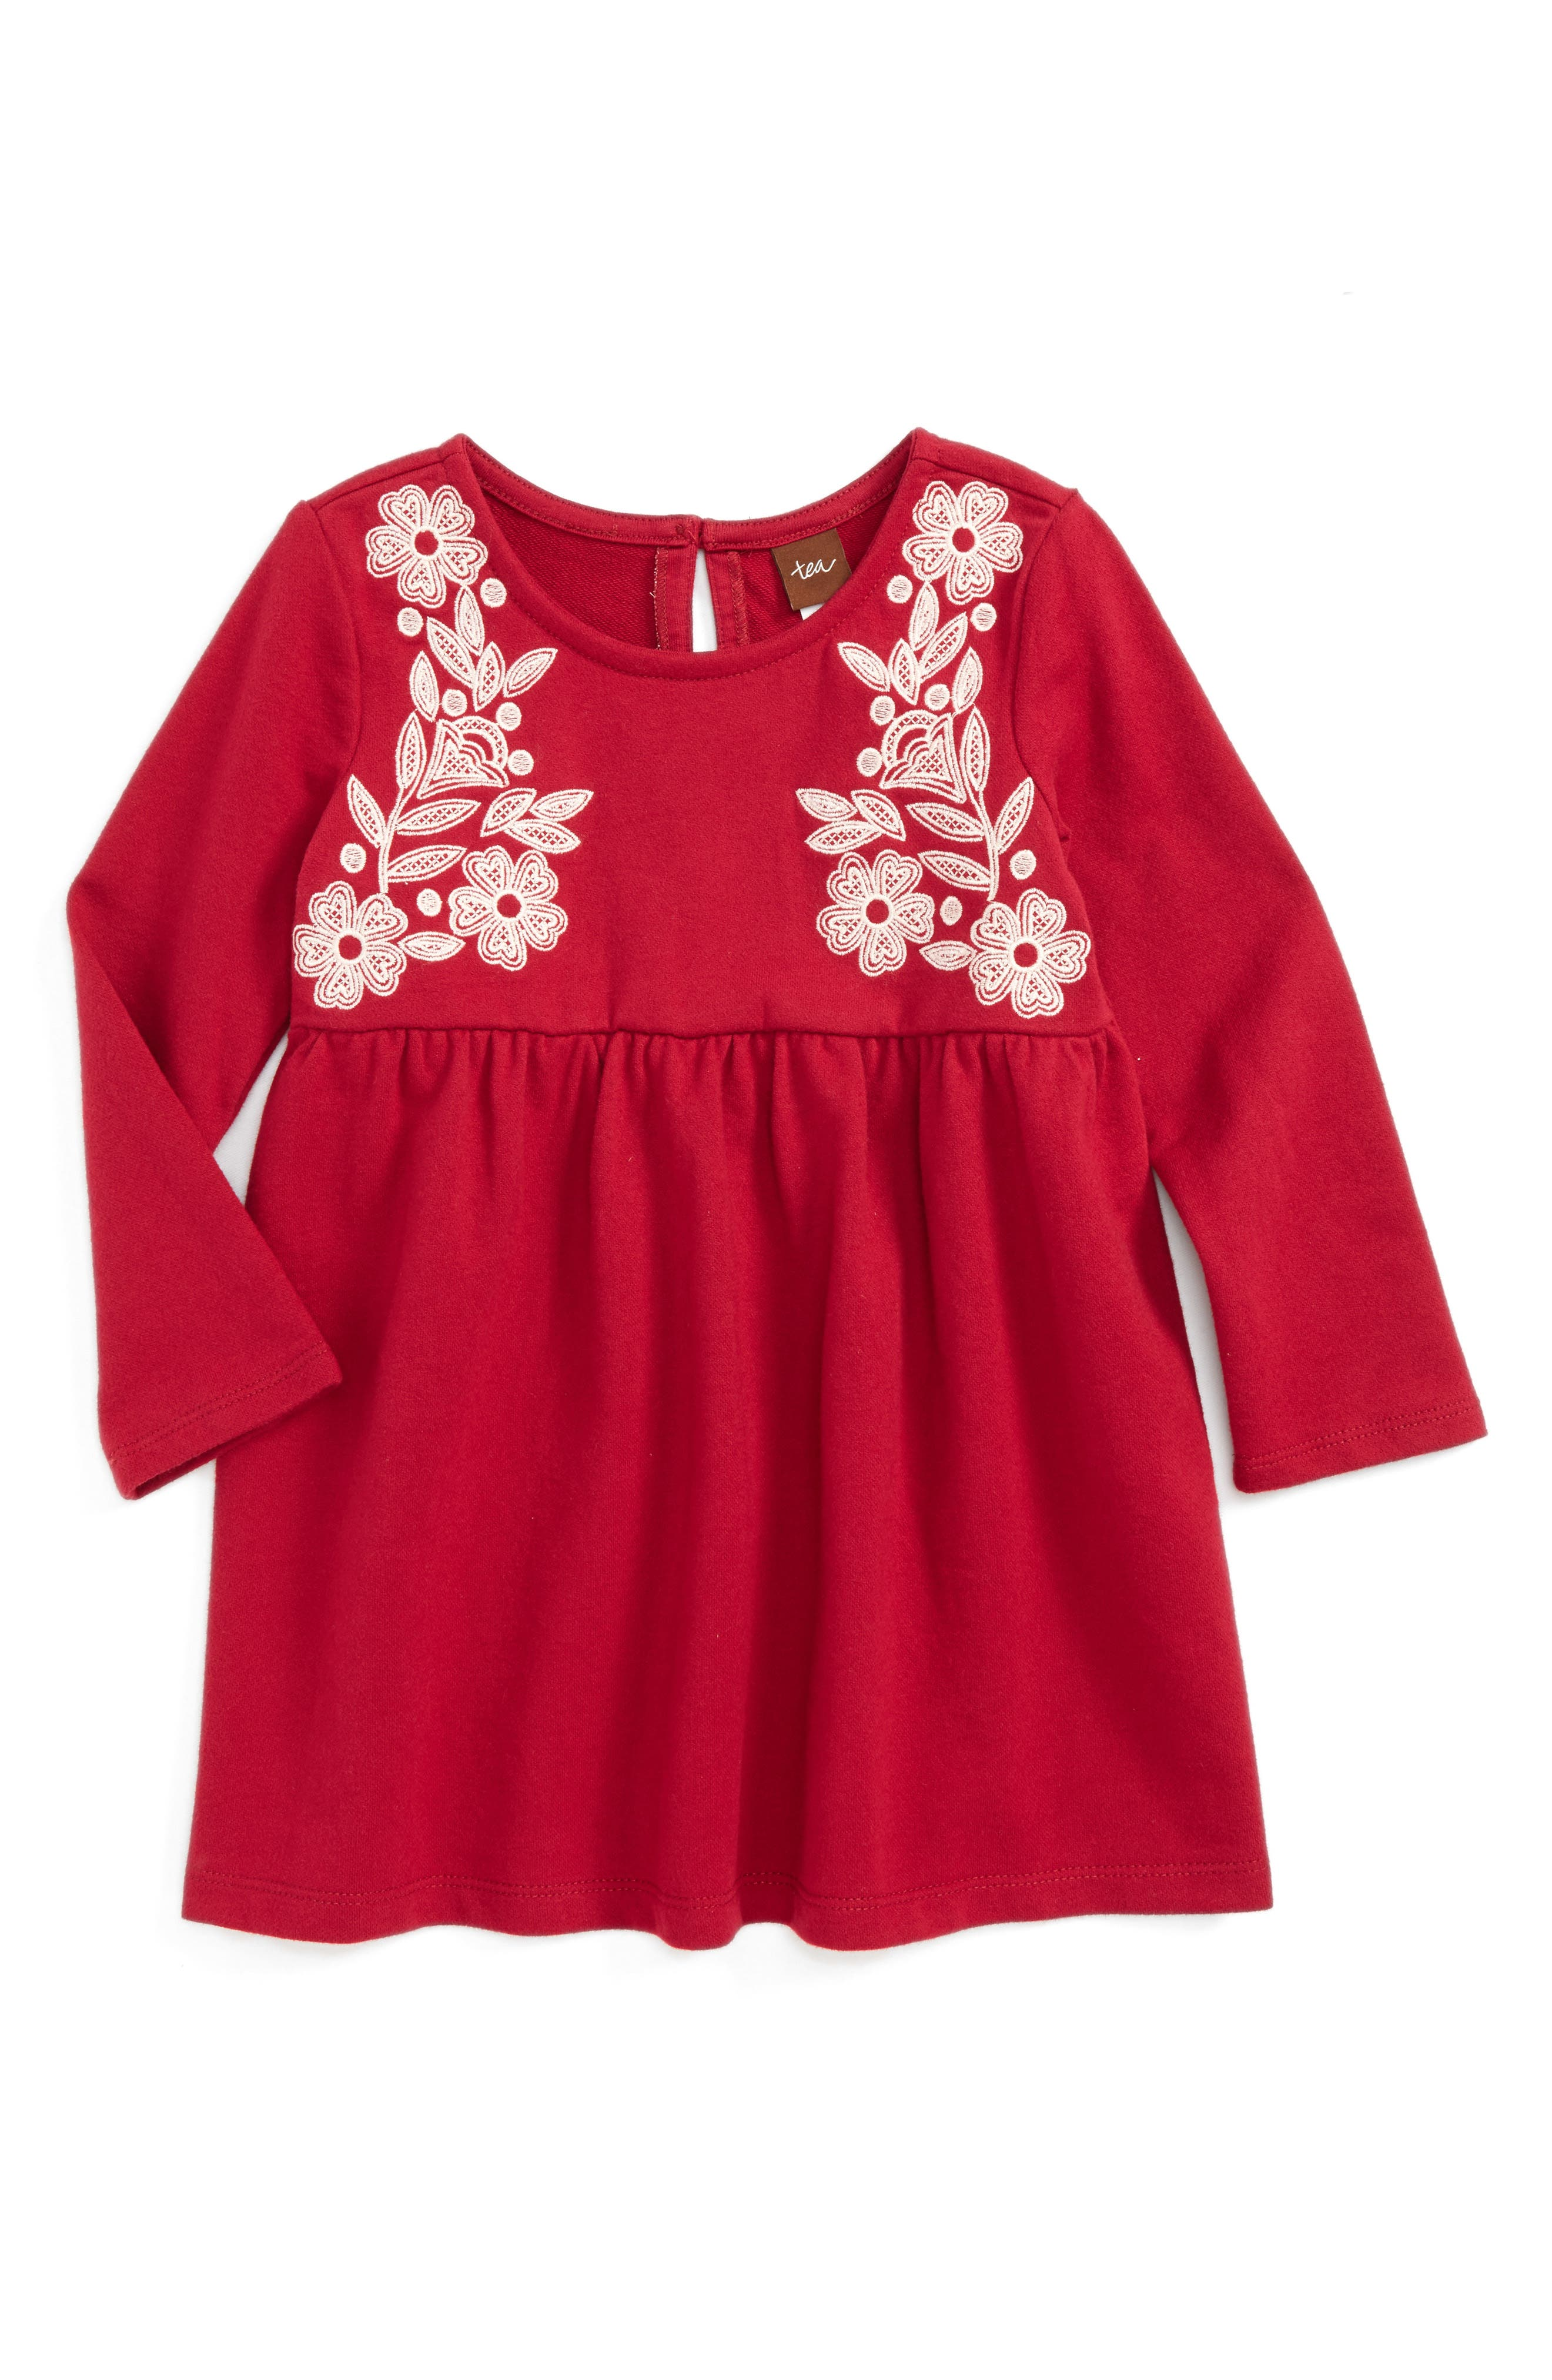 Main Image - Tea Collection Ailsa Embroidered Dress (Baby Girls)